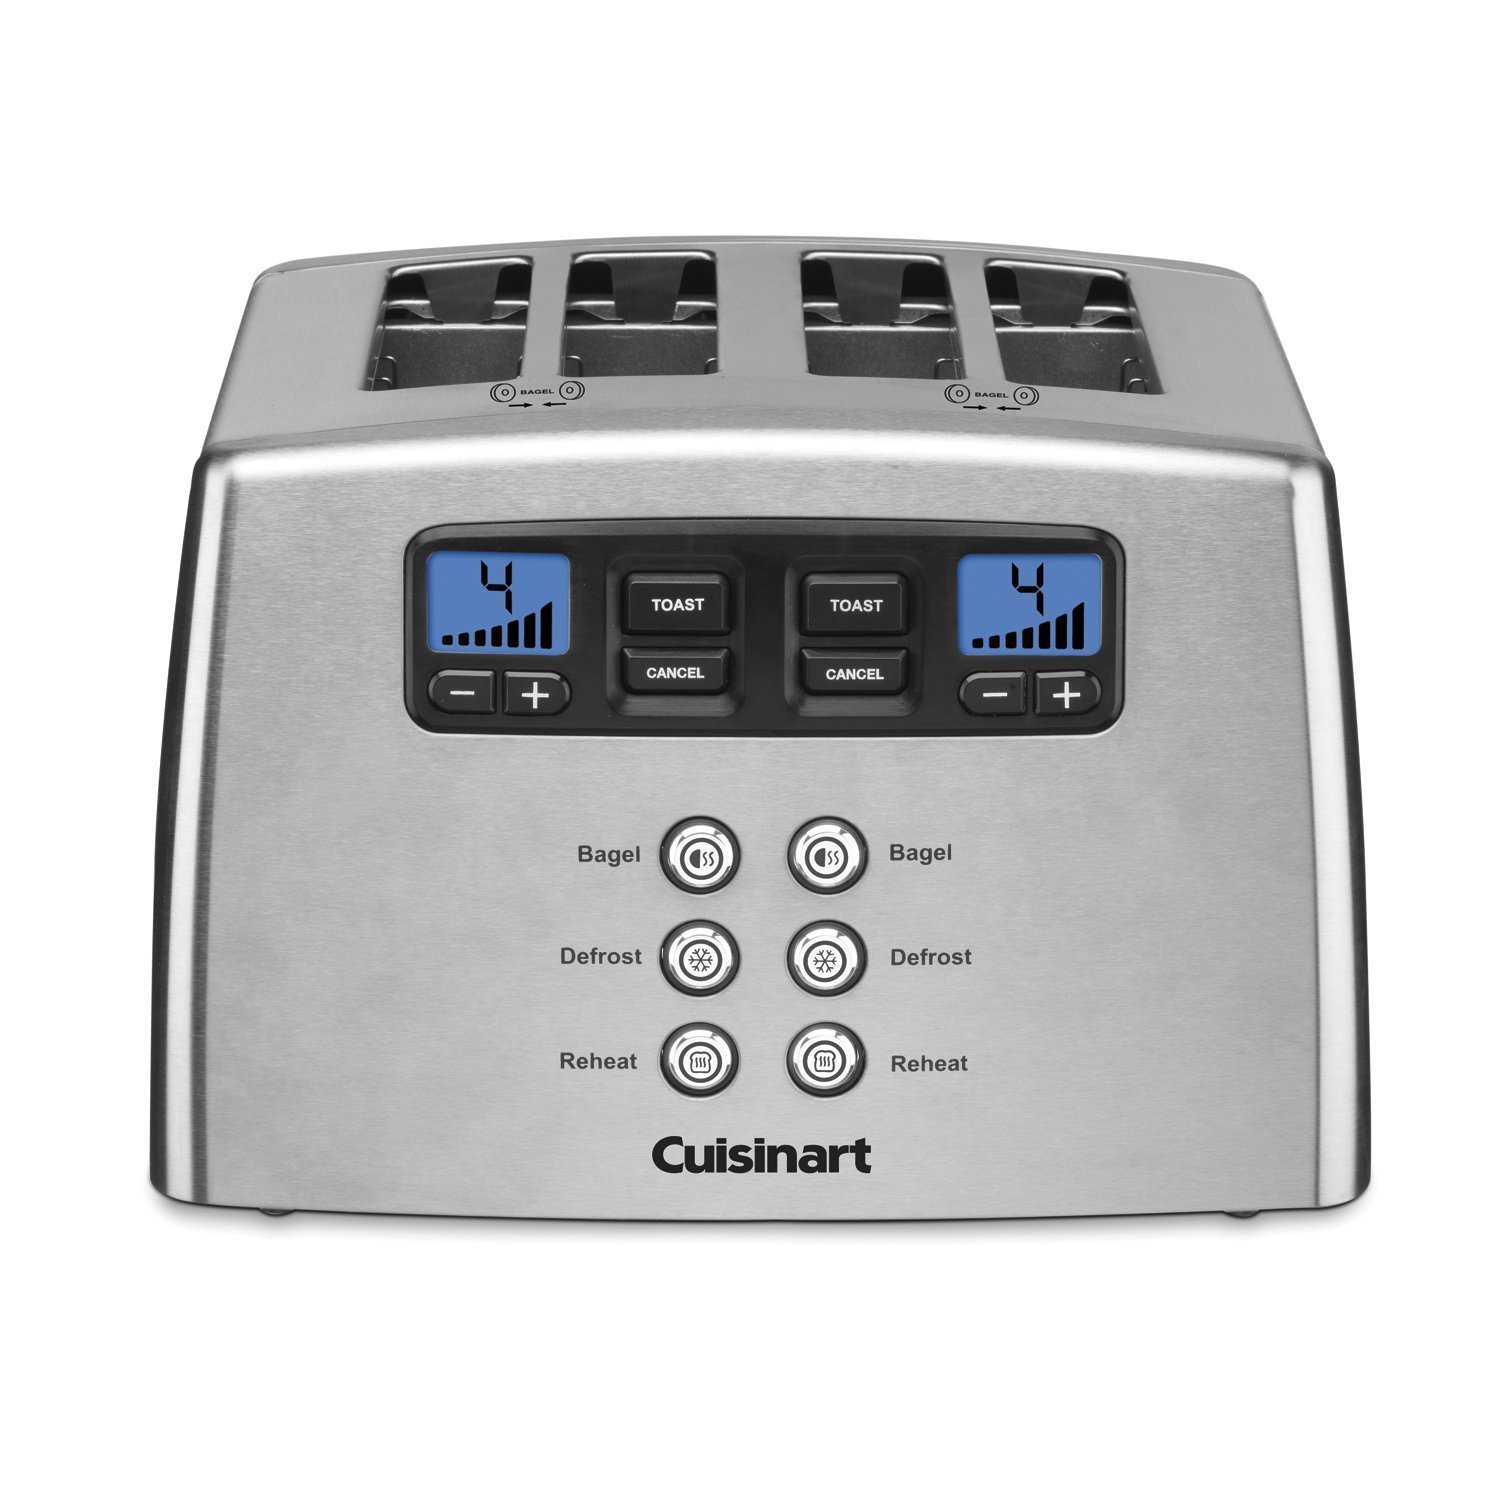 【10%OFF】 Cuisinart CPT-440 Touch to Toast Leverless CPT-440 4-Slice Toaster 4-Slice [並行輸入品] [並行輸入品] B013D10EZS, 湯田町:729a05bc --- arianechie.dominiotemporario.com